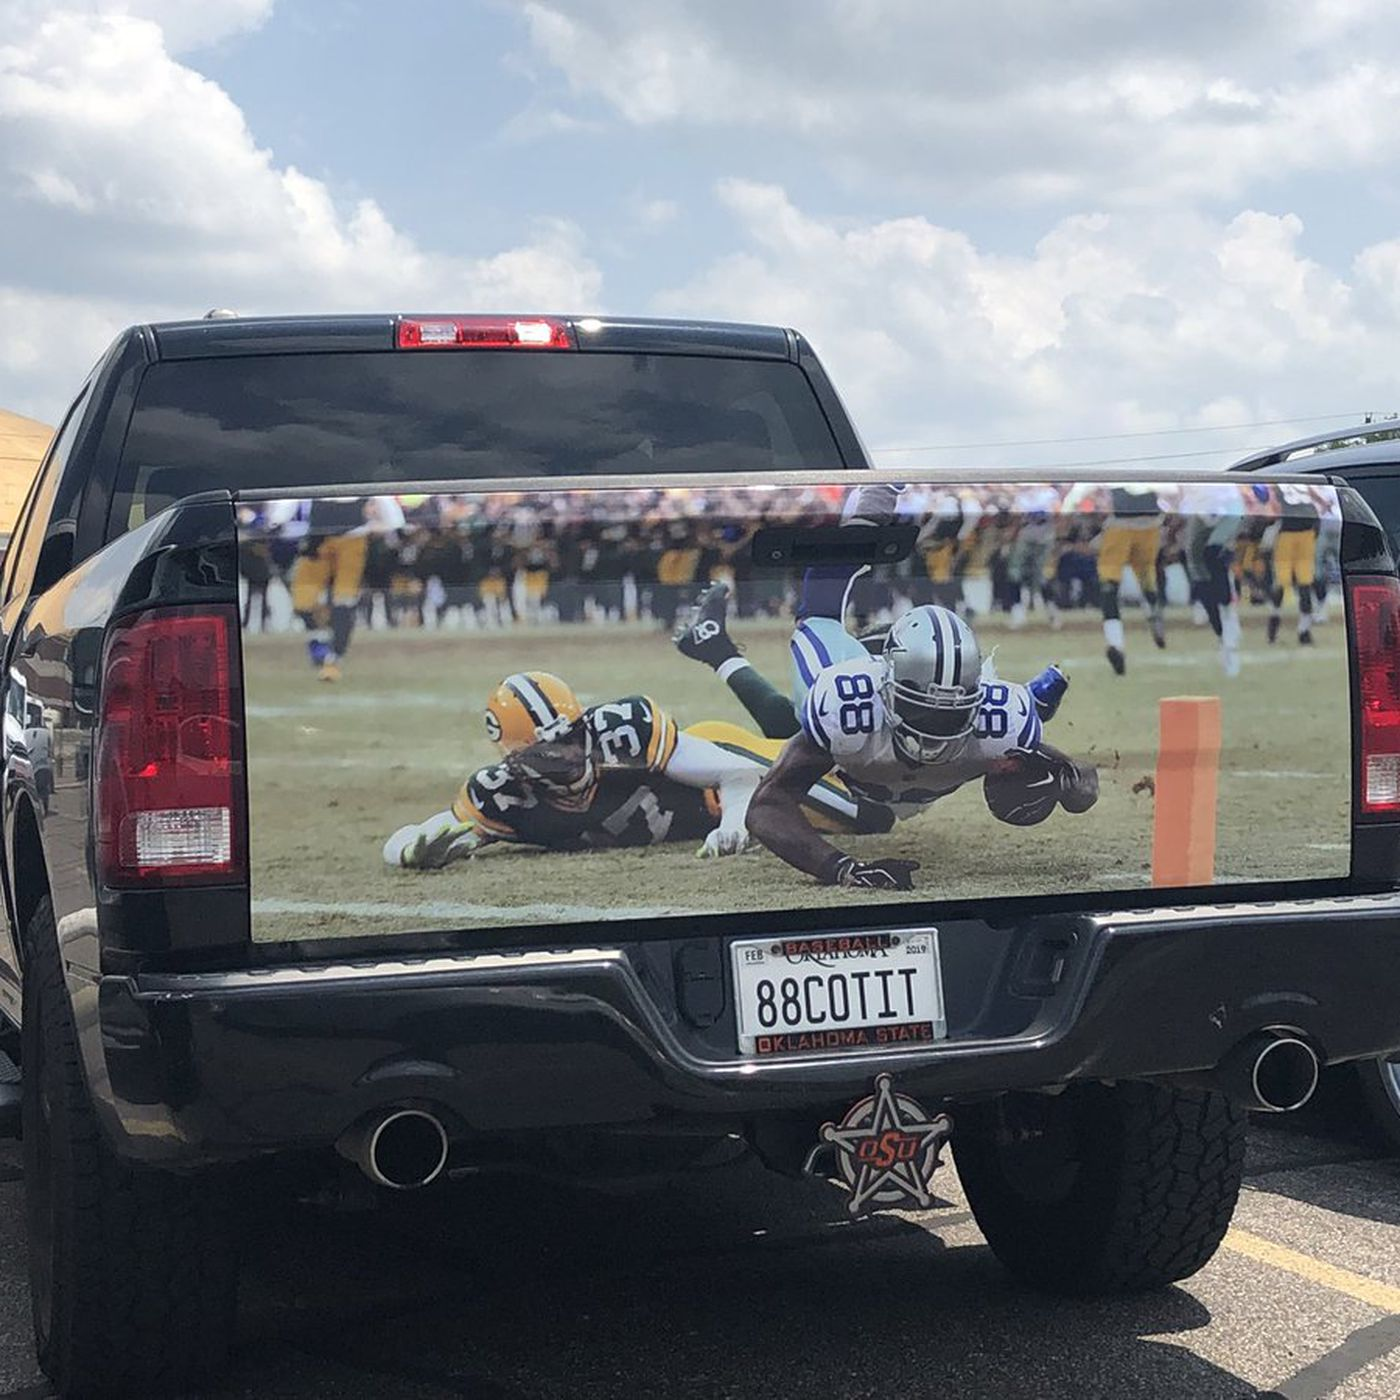 This Dez Bryant Fan S Truck Is A Moving Billboard For Dez